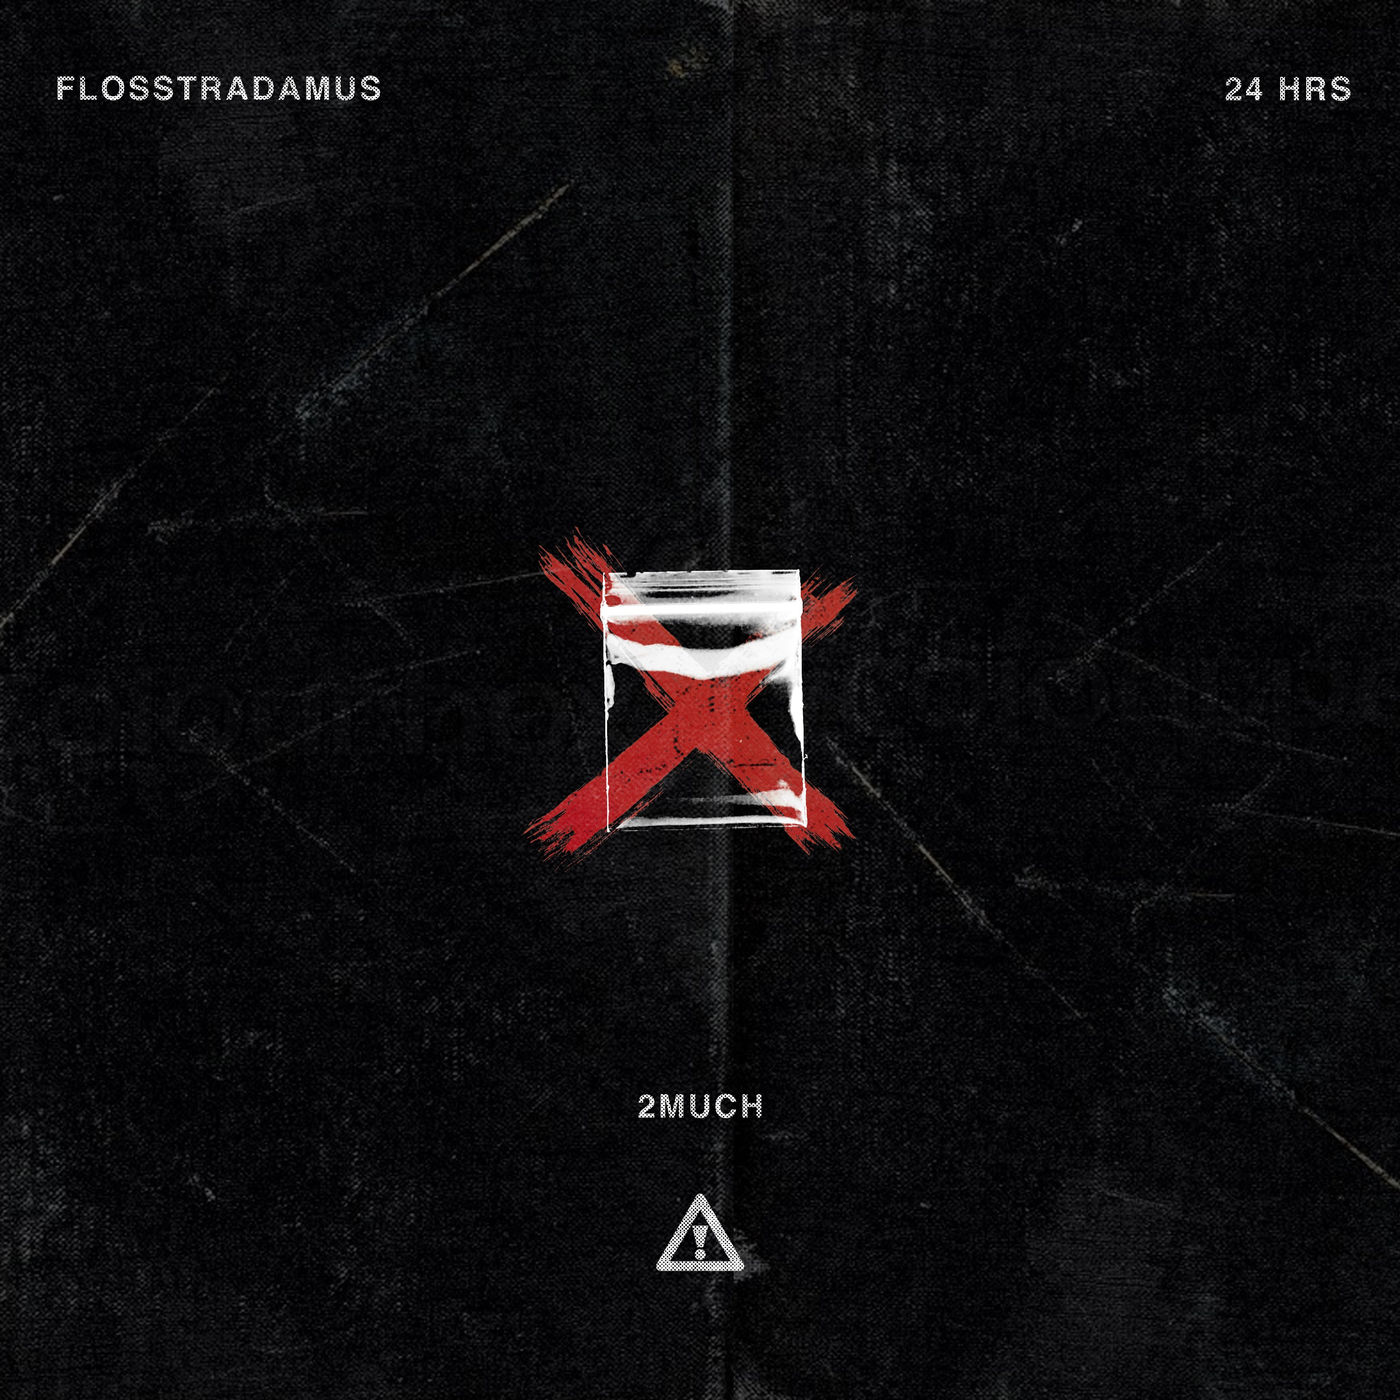 Flosstradamus - 2 MUCH ft 24hrs